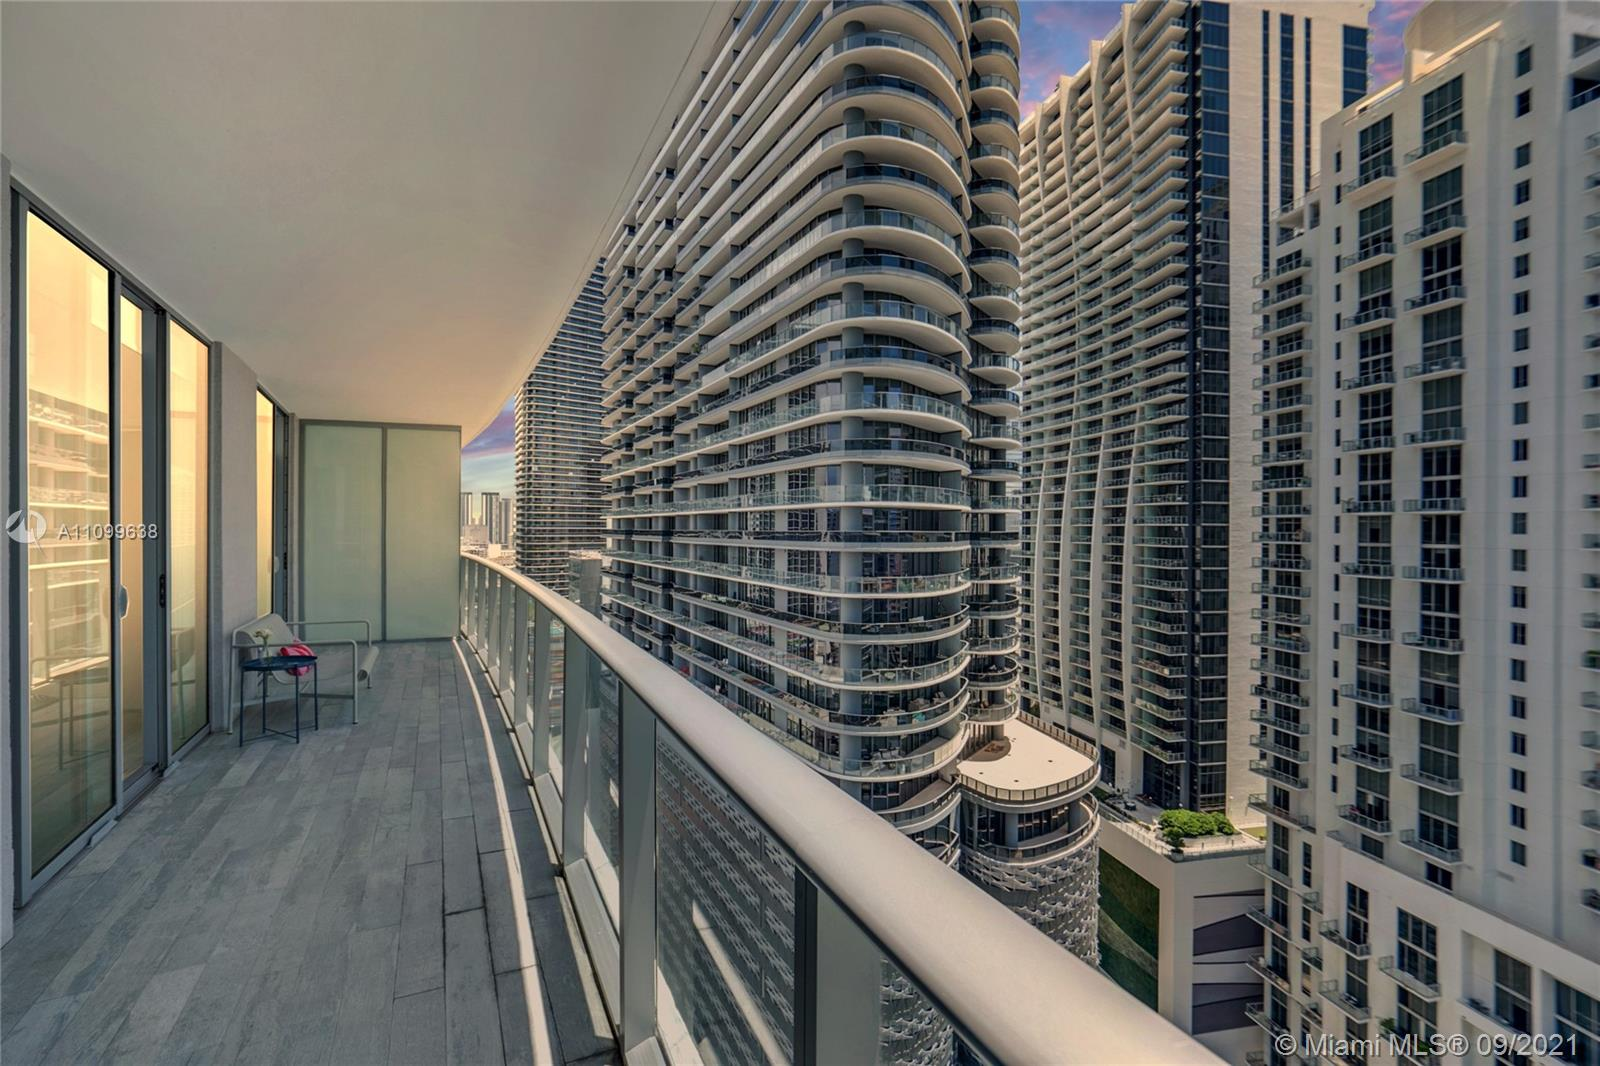 Two bedroom, two bathroom  + DEN unit with views to Brickell and Biscayne Bay. Featuring marble flooring throughout the entire unit and Italian kitchen. Central location, many amenities including party rooms, rooftop pool overlooking Miami, gym, children's playroom theater and more. Unit is available from 1/15/22-12/12/2022.